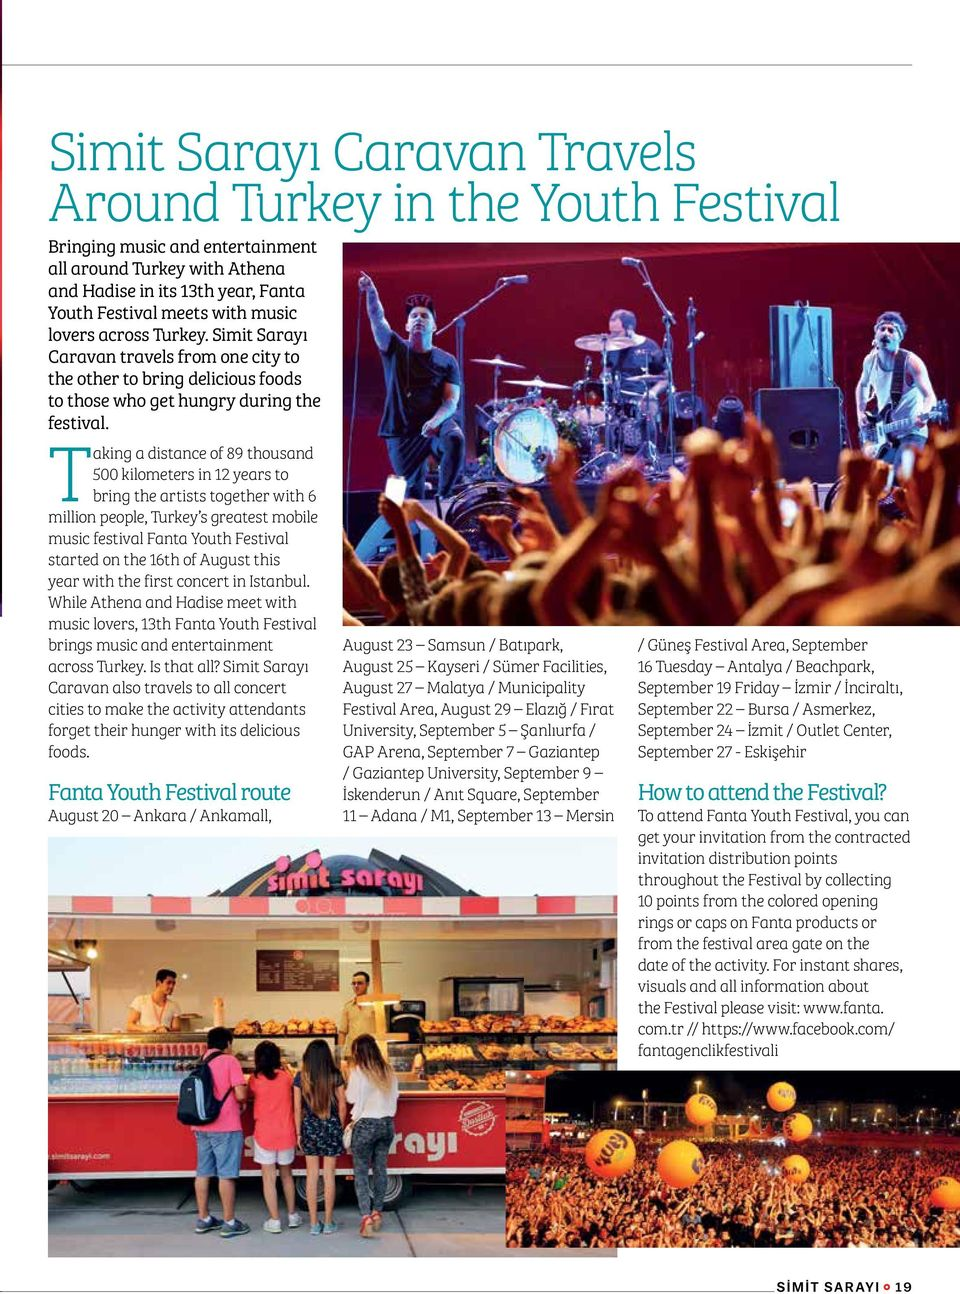 Taking a distance of 89 thousand 500 kilometers in 12 years to bring the artists together with 6 million people, Turkey s greatest mobile music festival Fanta Youth Festival started on the 16th of